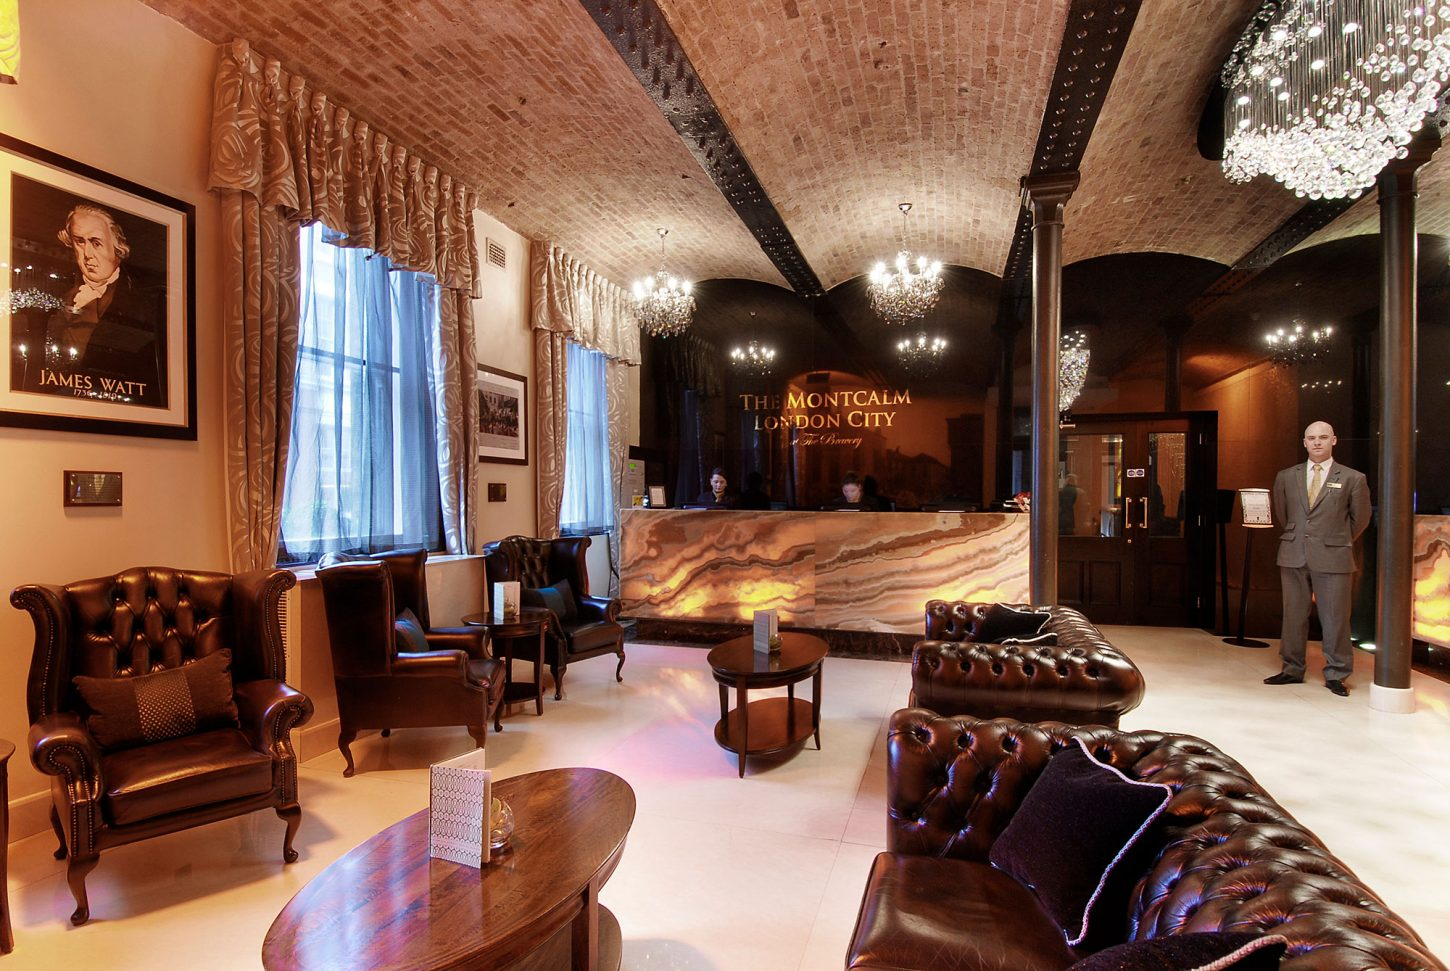 A plush room - Montcalm at The Brewery